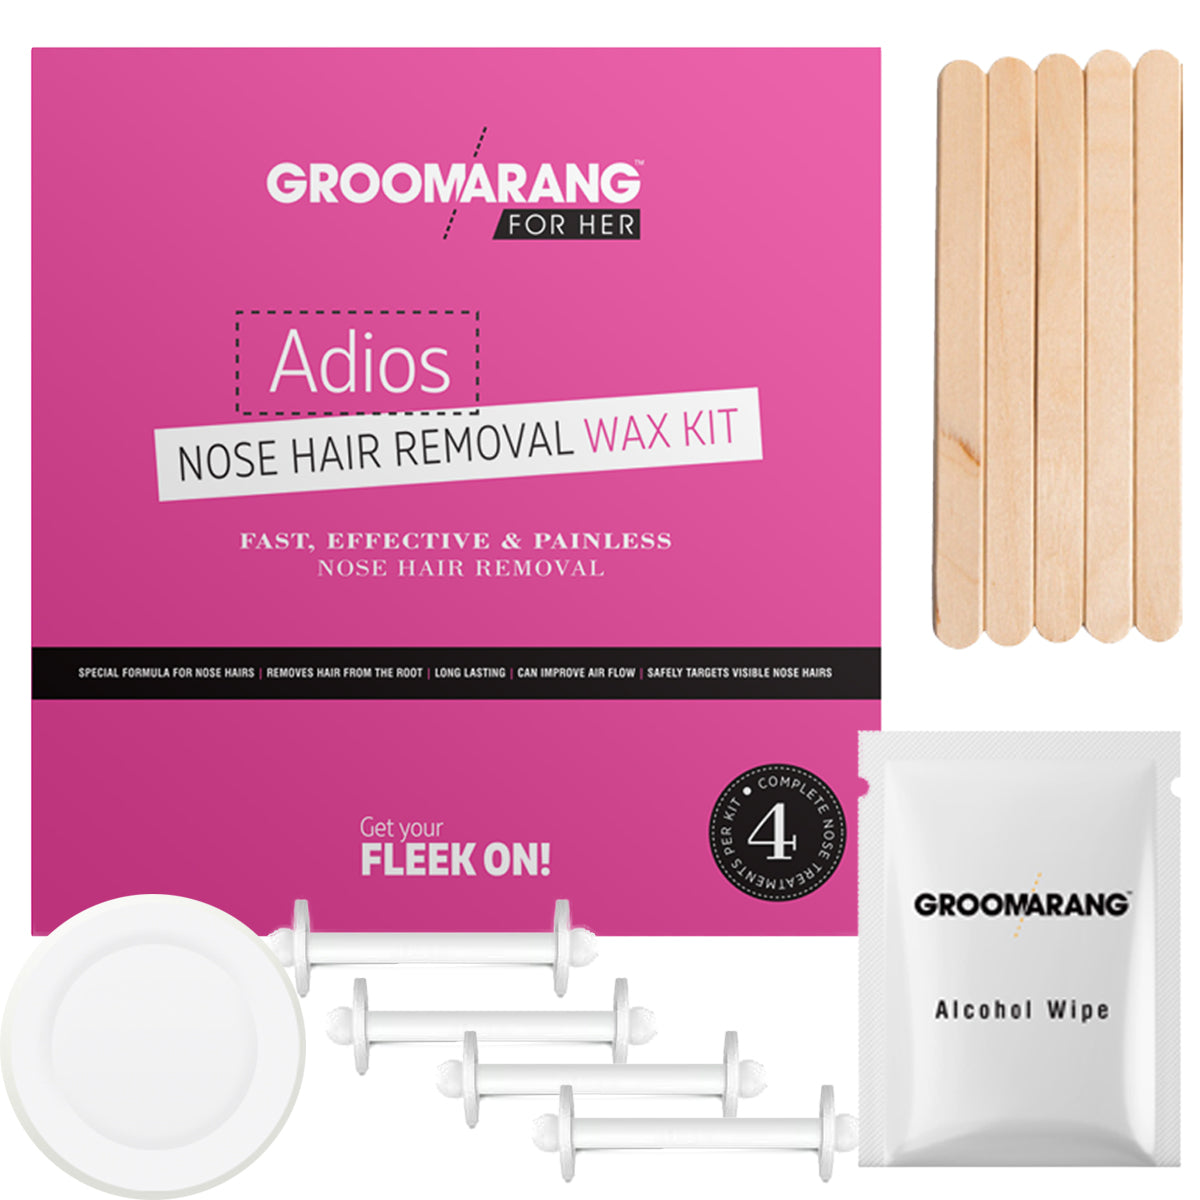 Groomarang For Her- Adios Nose Hair Removal Wax Kit For Her, Waxing Kits & Supplies - Image 5